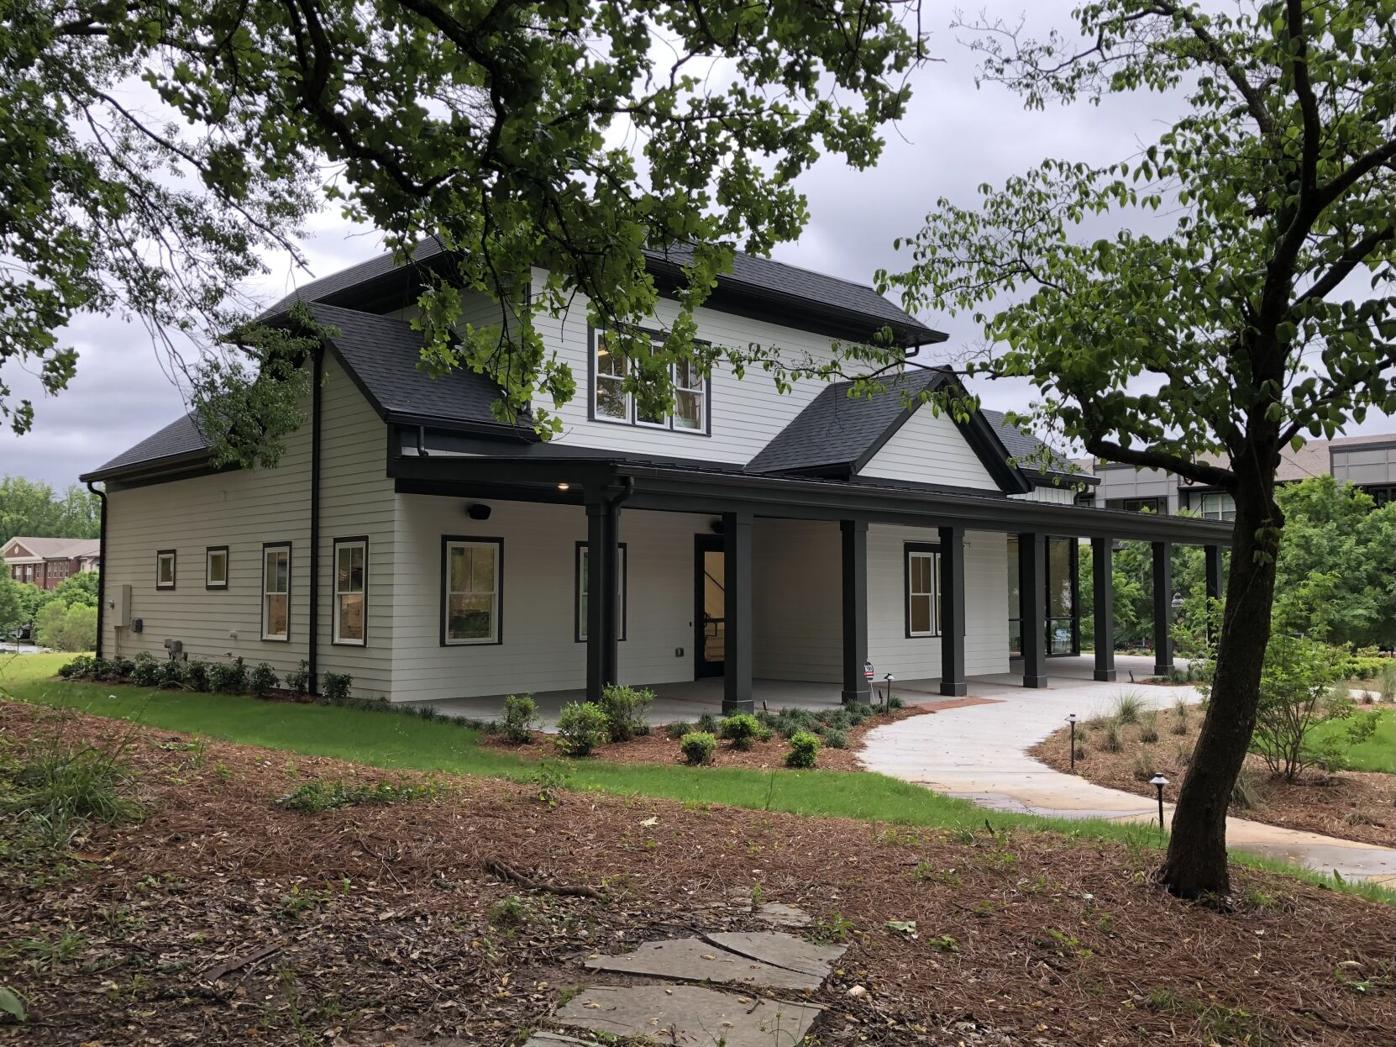 The Reeves House Visual Arts Center is opening Friday and will host a number of events and programs. The center will also feature a coffee and wine bar. Ethan Johnson